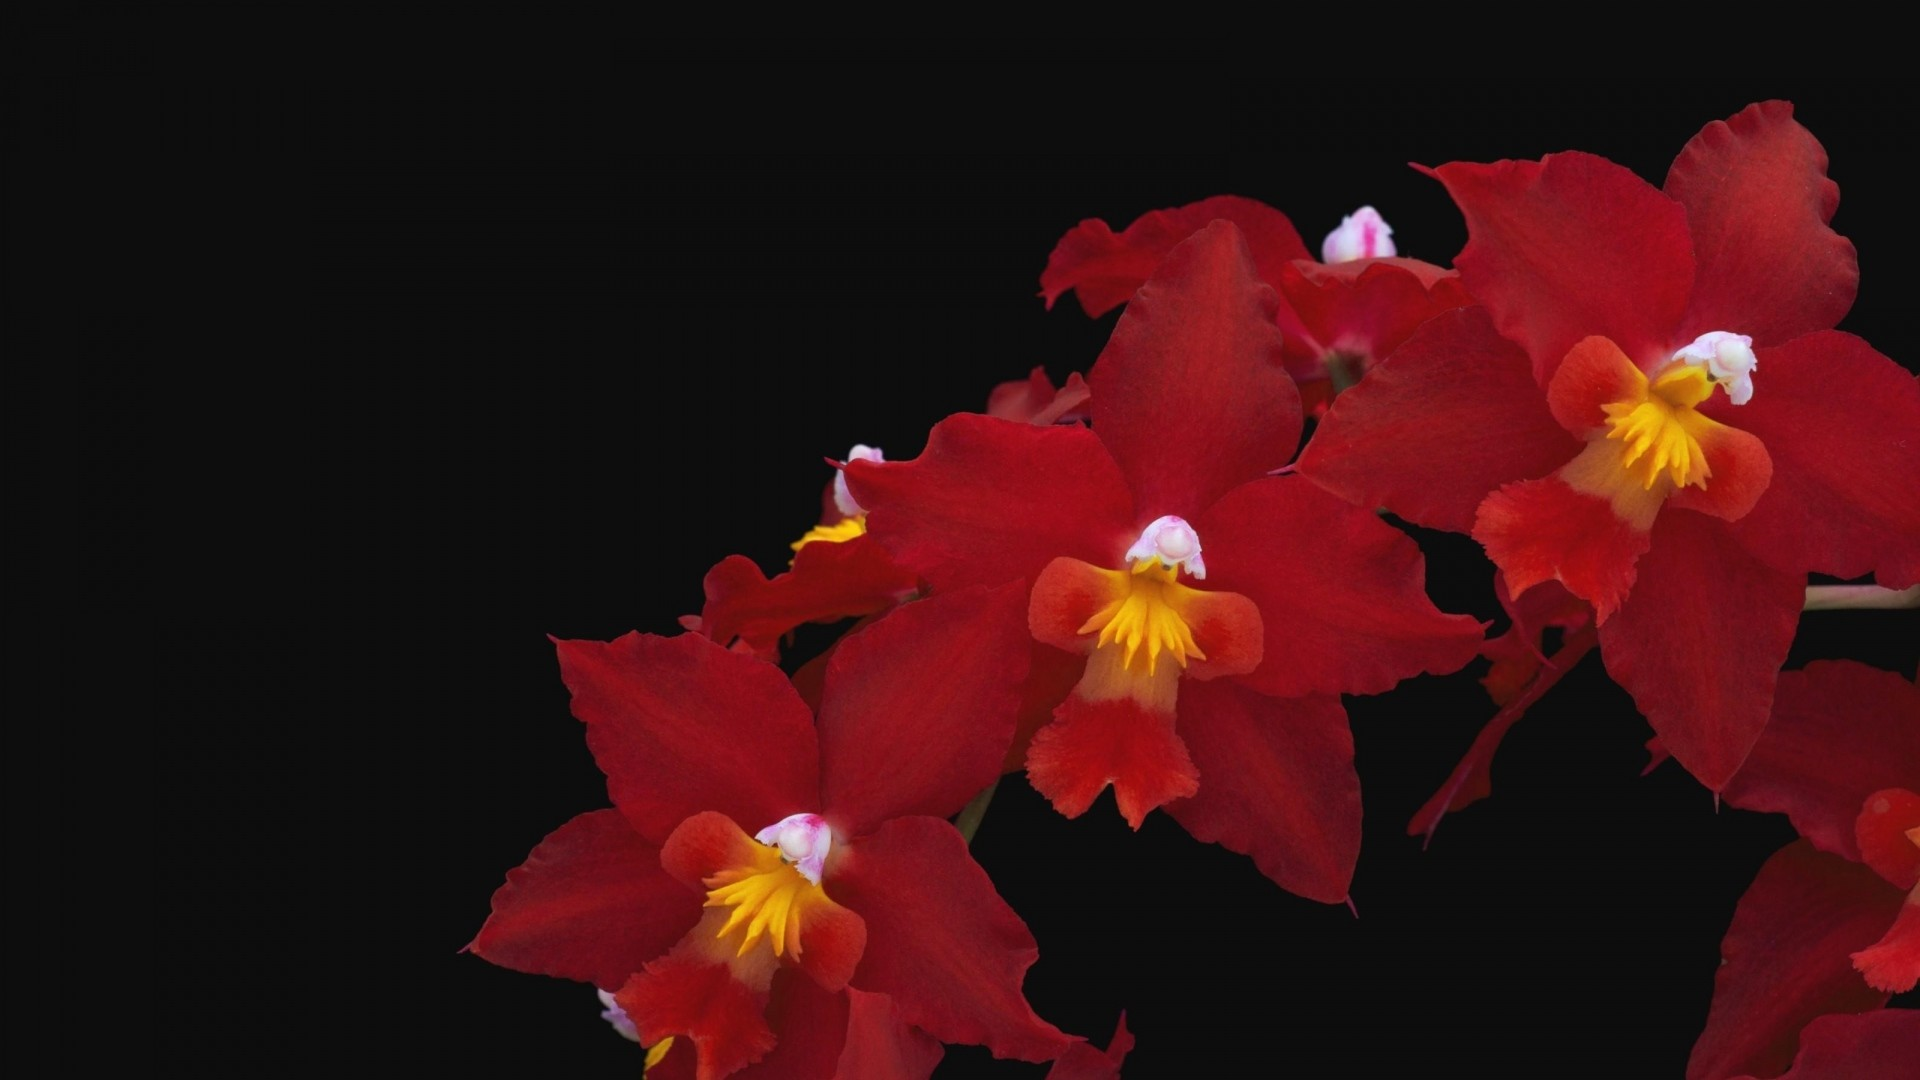 Wallpaper orchid, flower, red, thread, black background